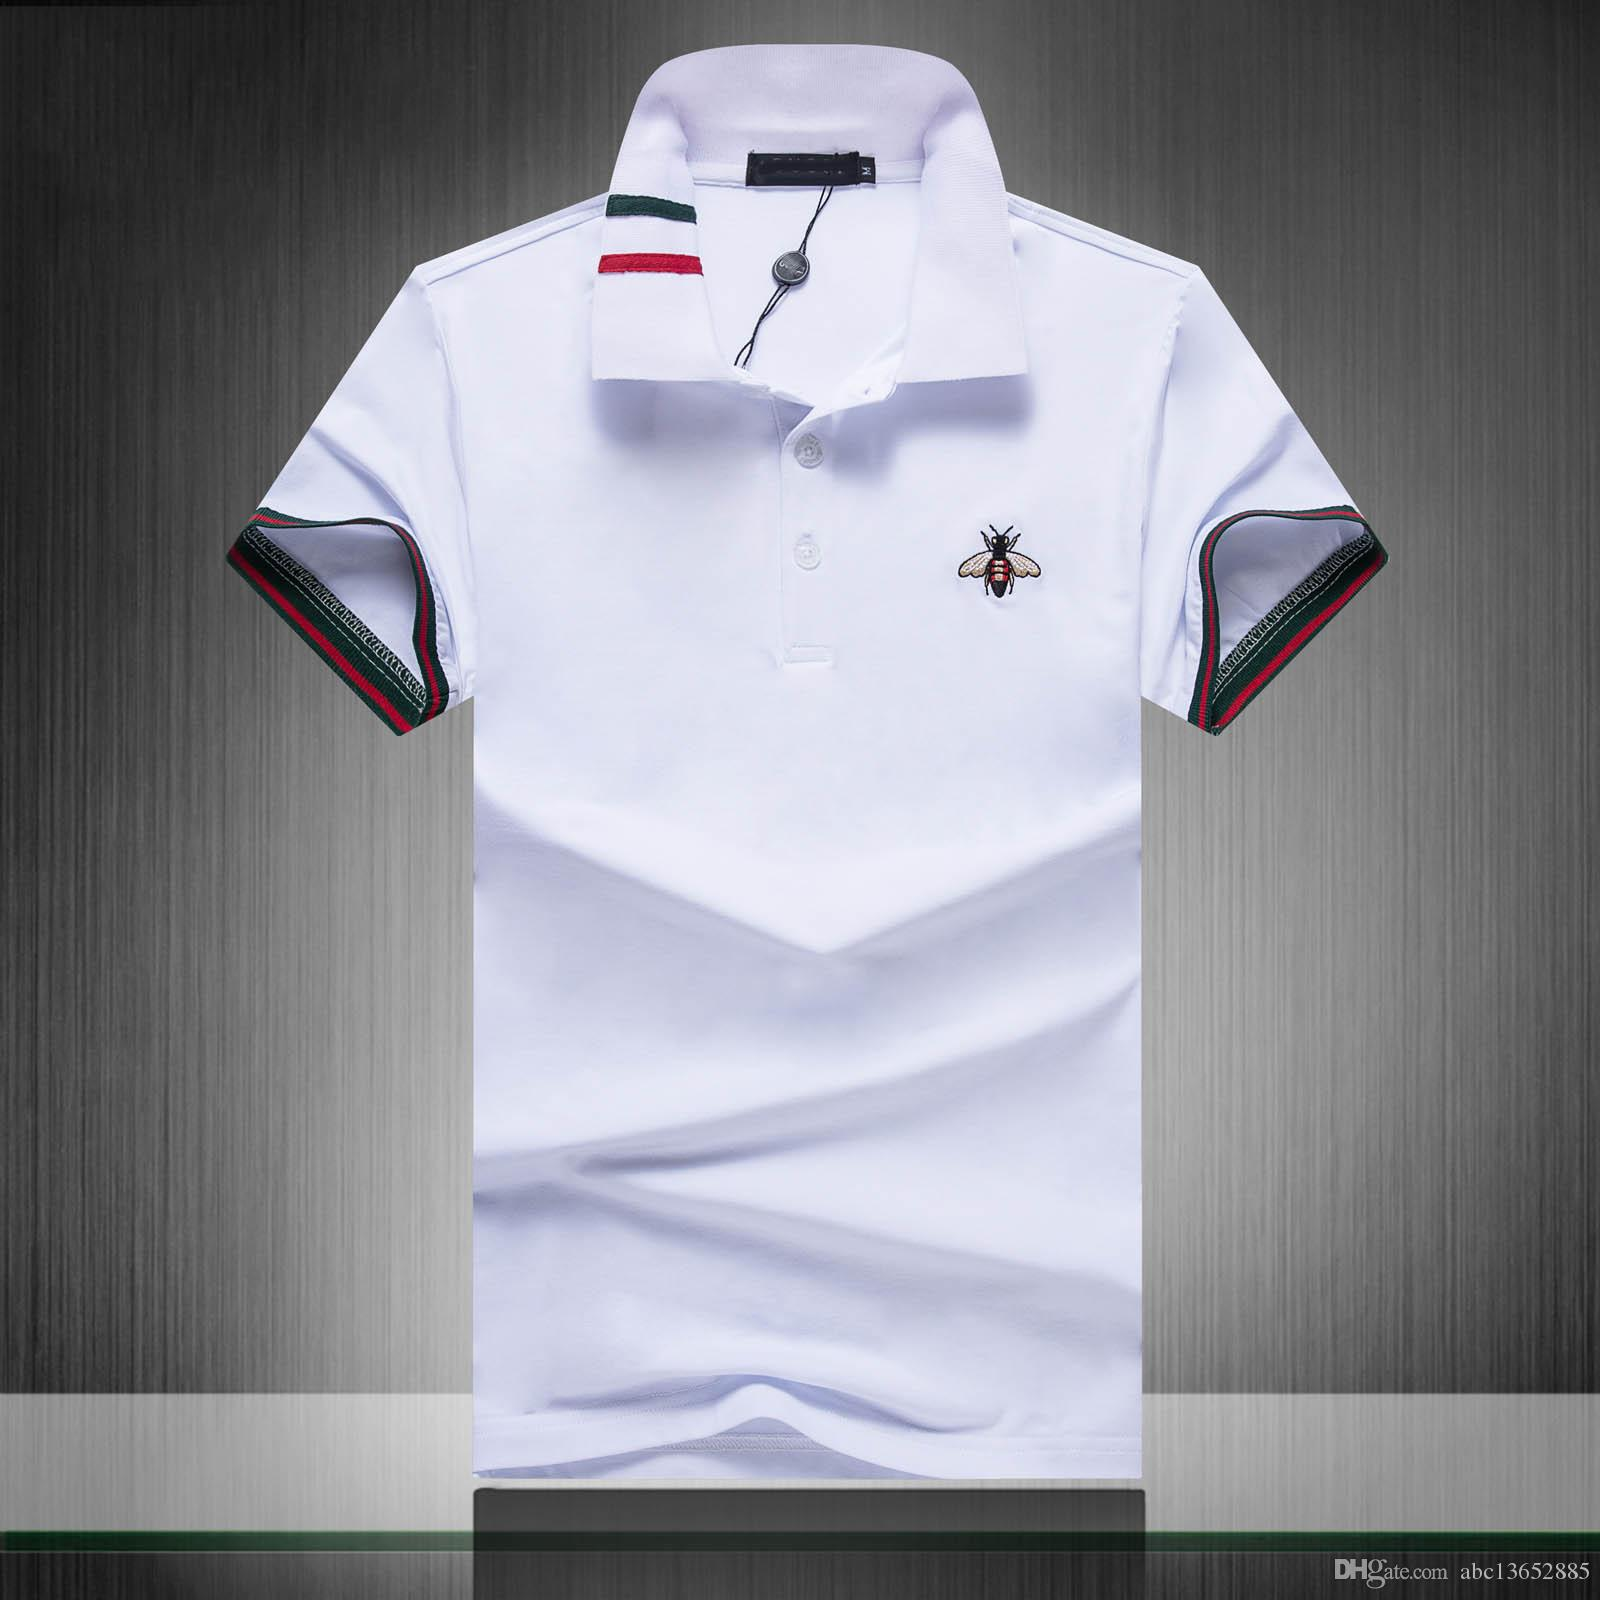 a97c0e63 2019 2019 Brand New Fashion Classic Striped Men Polo Shirts Short Sleeved  Casual Polo Shirt Snake Bee Floral Embroidery Mens Polos 3XL From  Abc13652885, ...